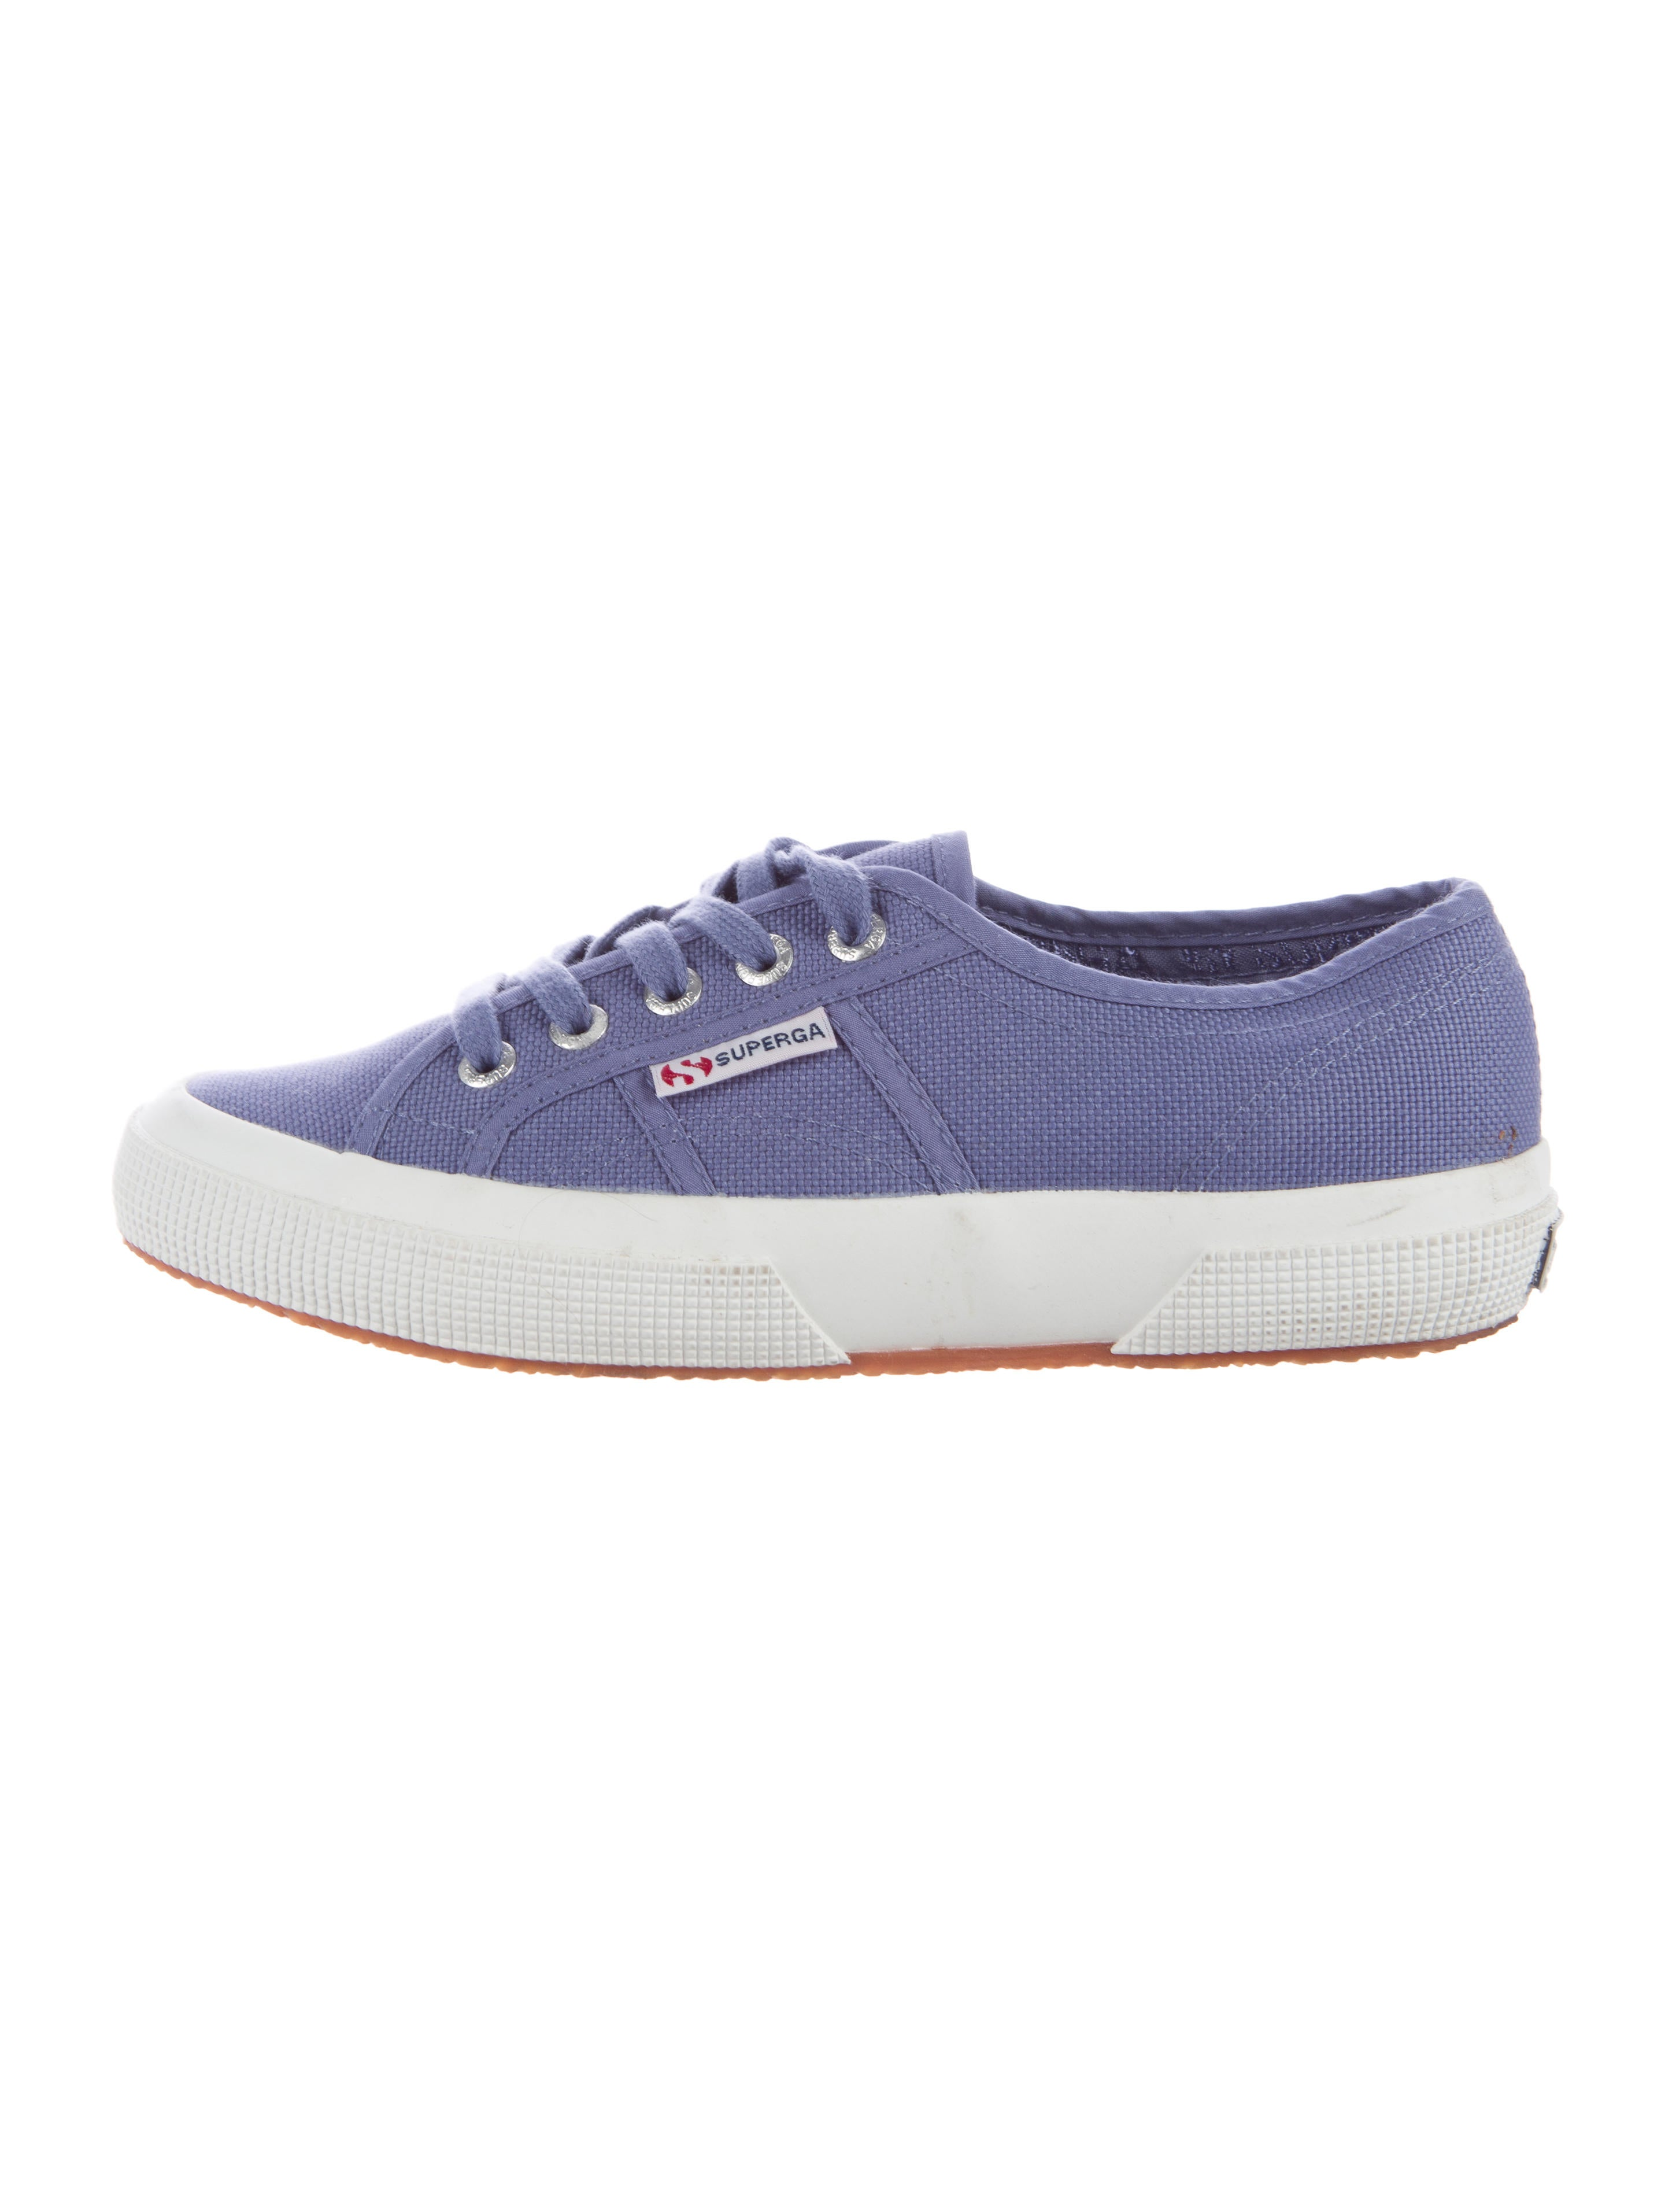 A casual lace-up canvas sneaker. Shoes must be in the condition you received them and in the original box. We understand the concerns and frustrations you may have, and will do our best to resolve any Womens Classic Canvas Plimsoll Shoes Casual Sneakers Tennis Lace Up Sizes 5 .